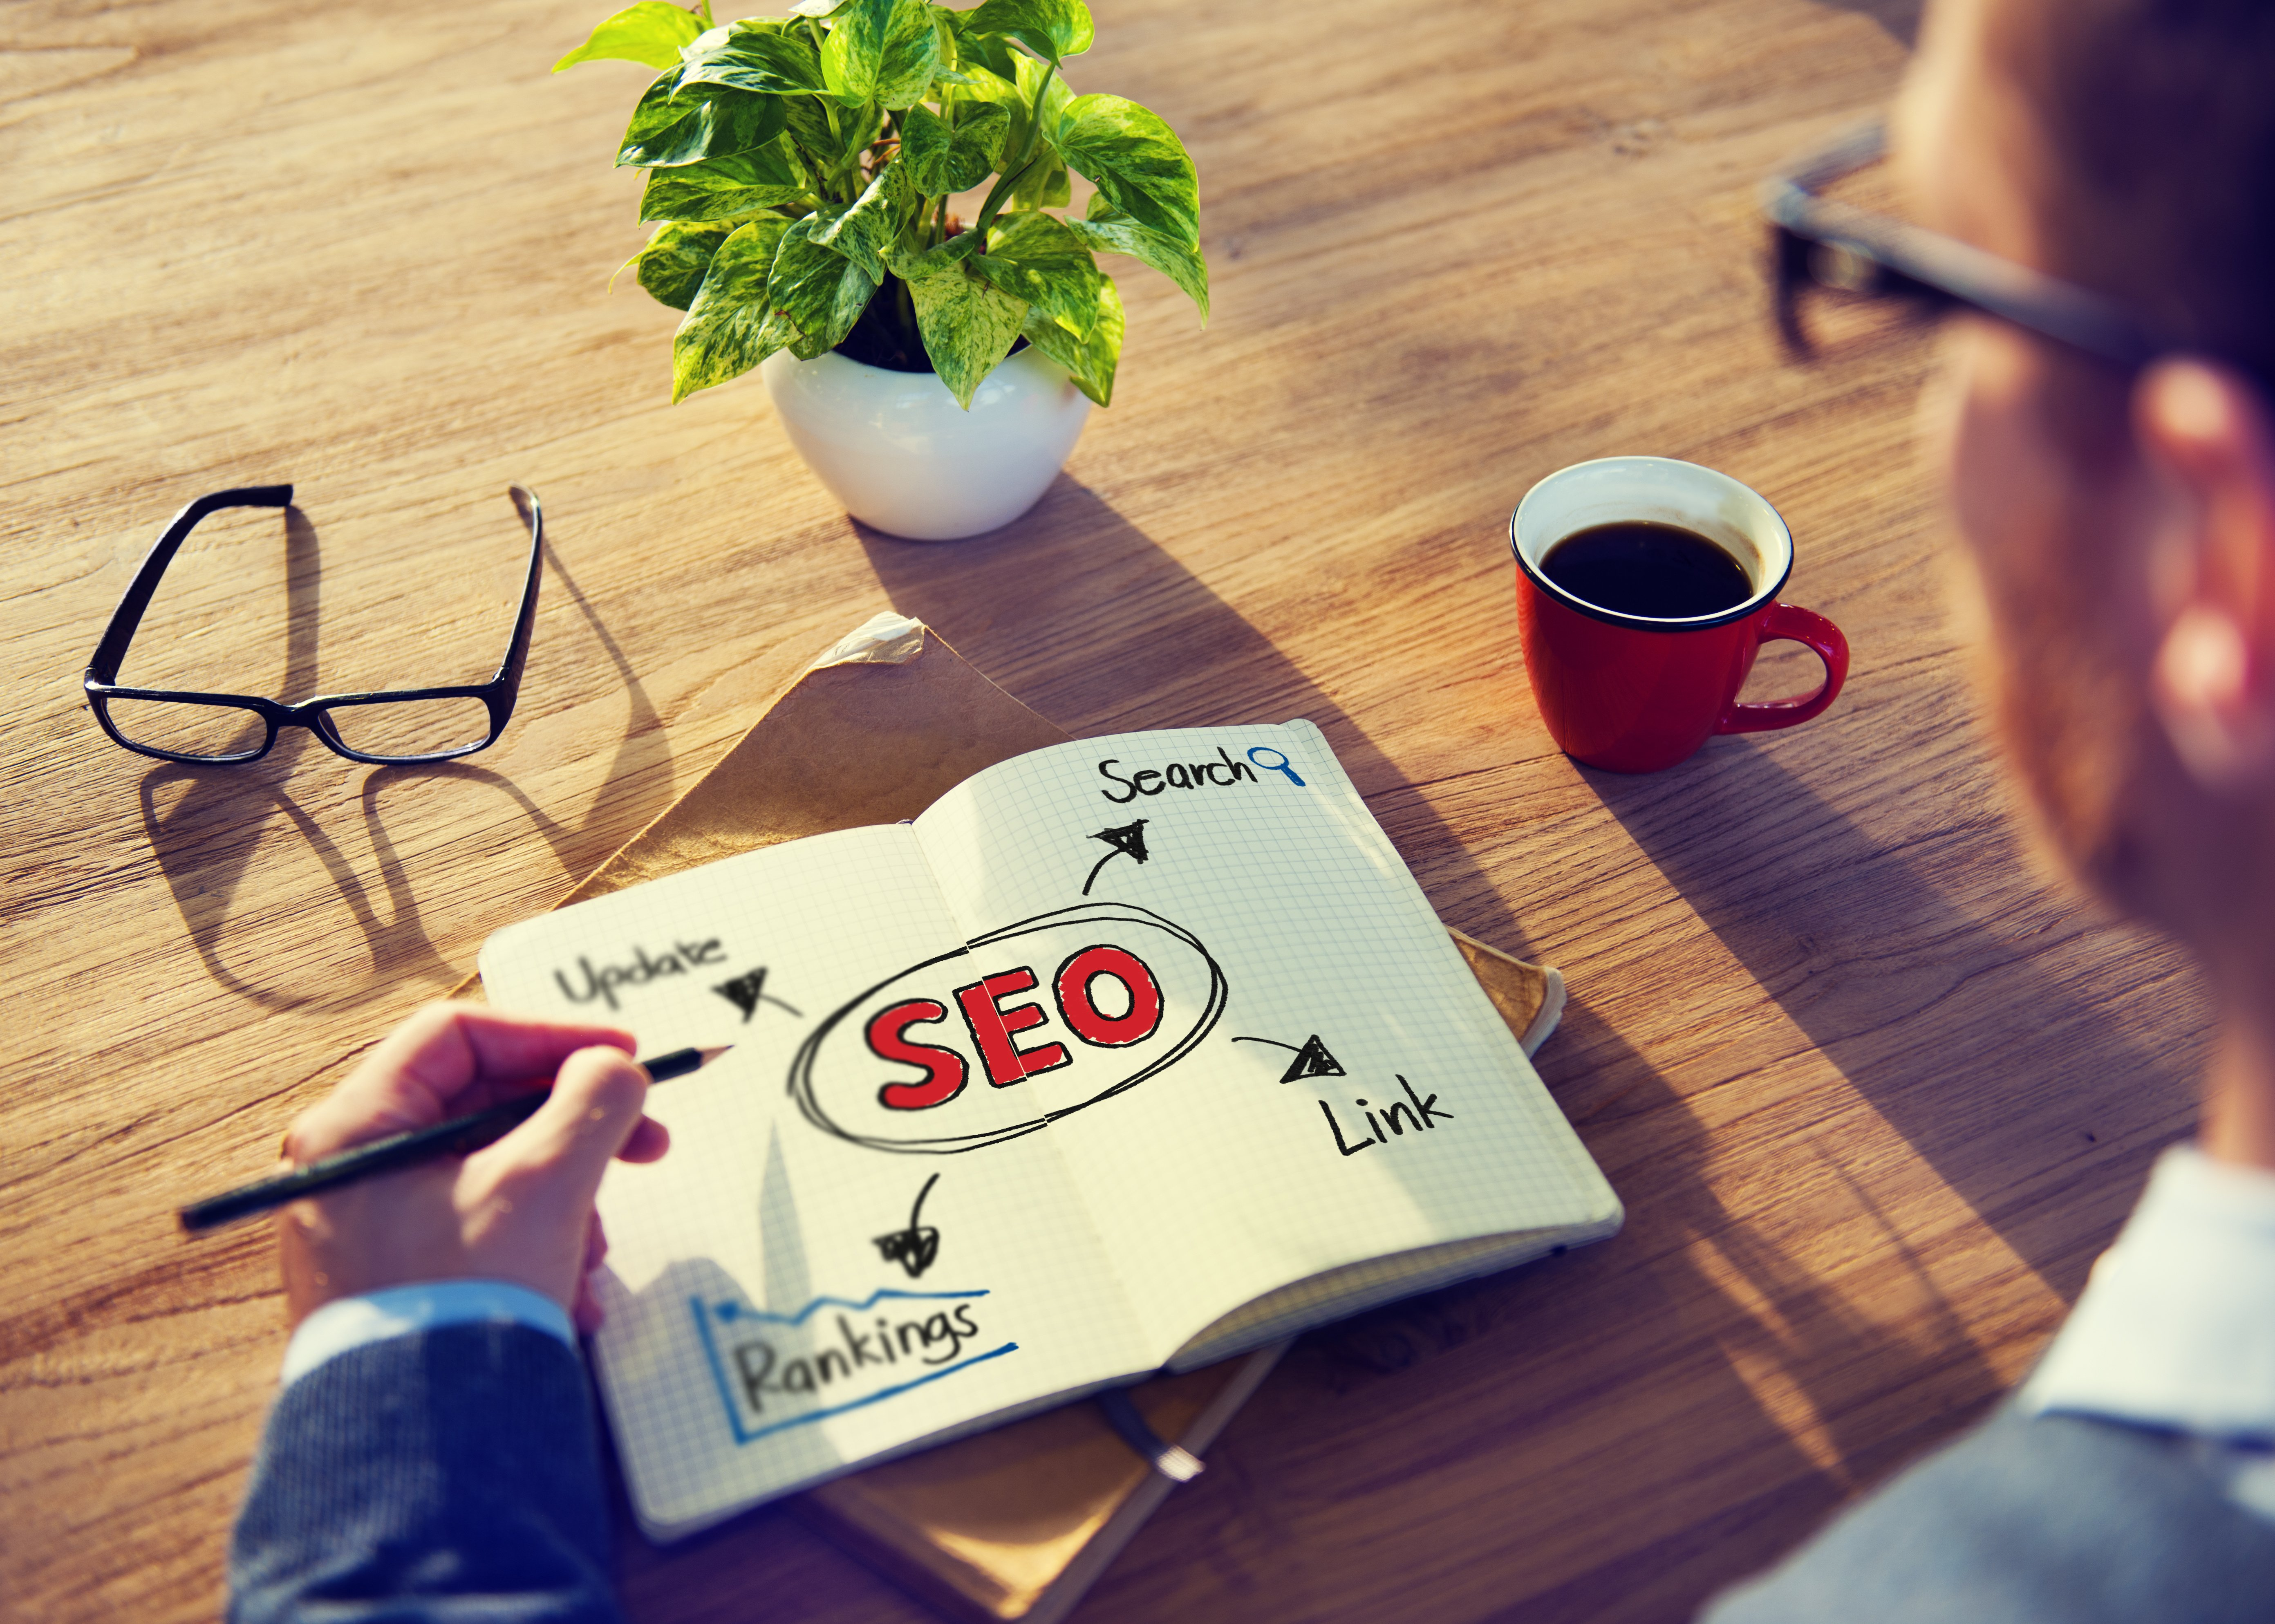 Do all businesses become successful with SEO?